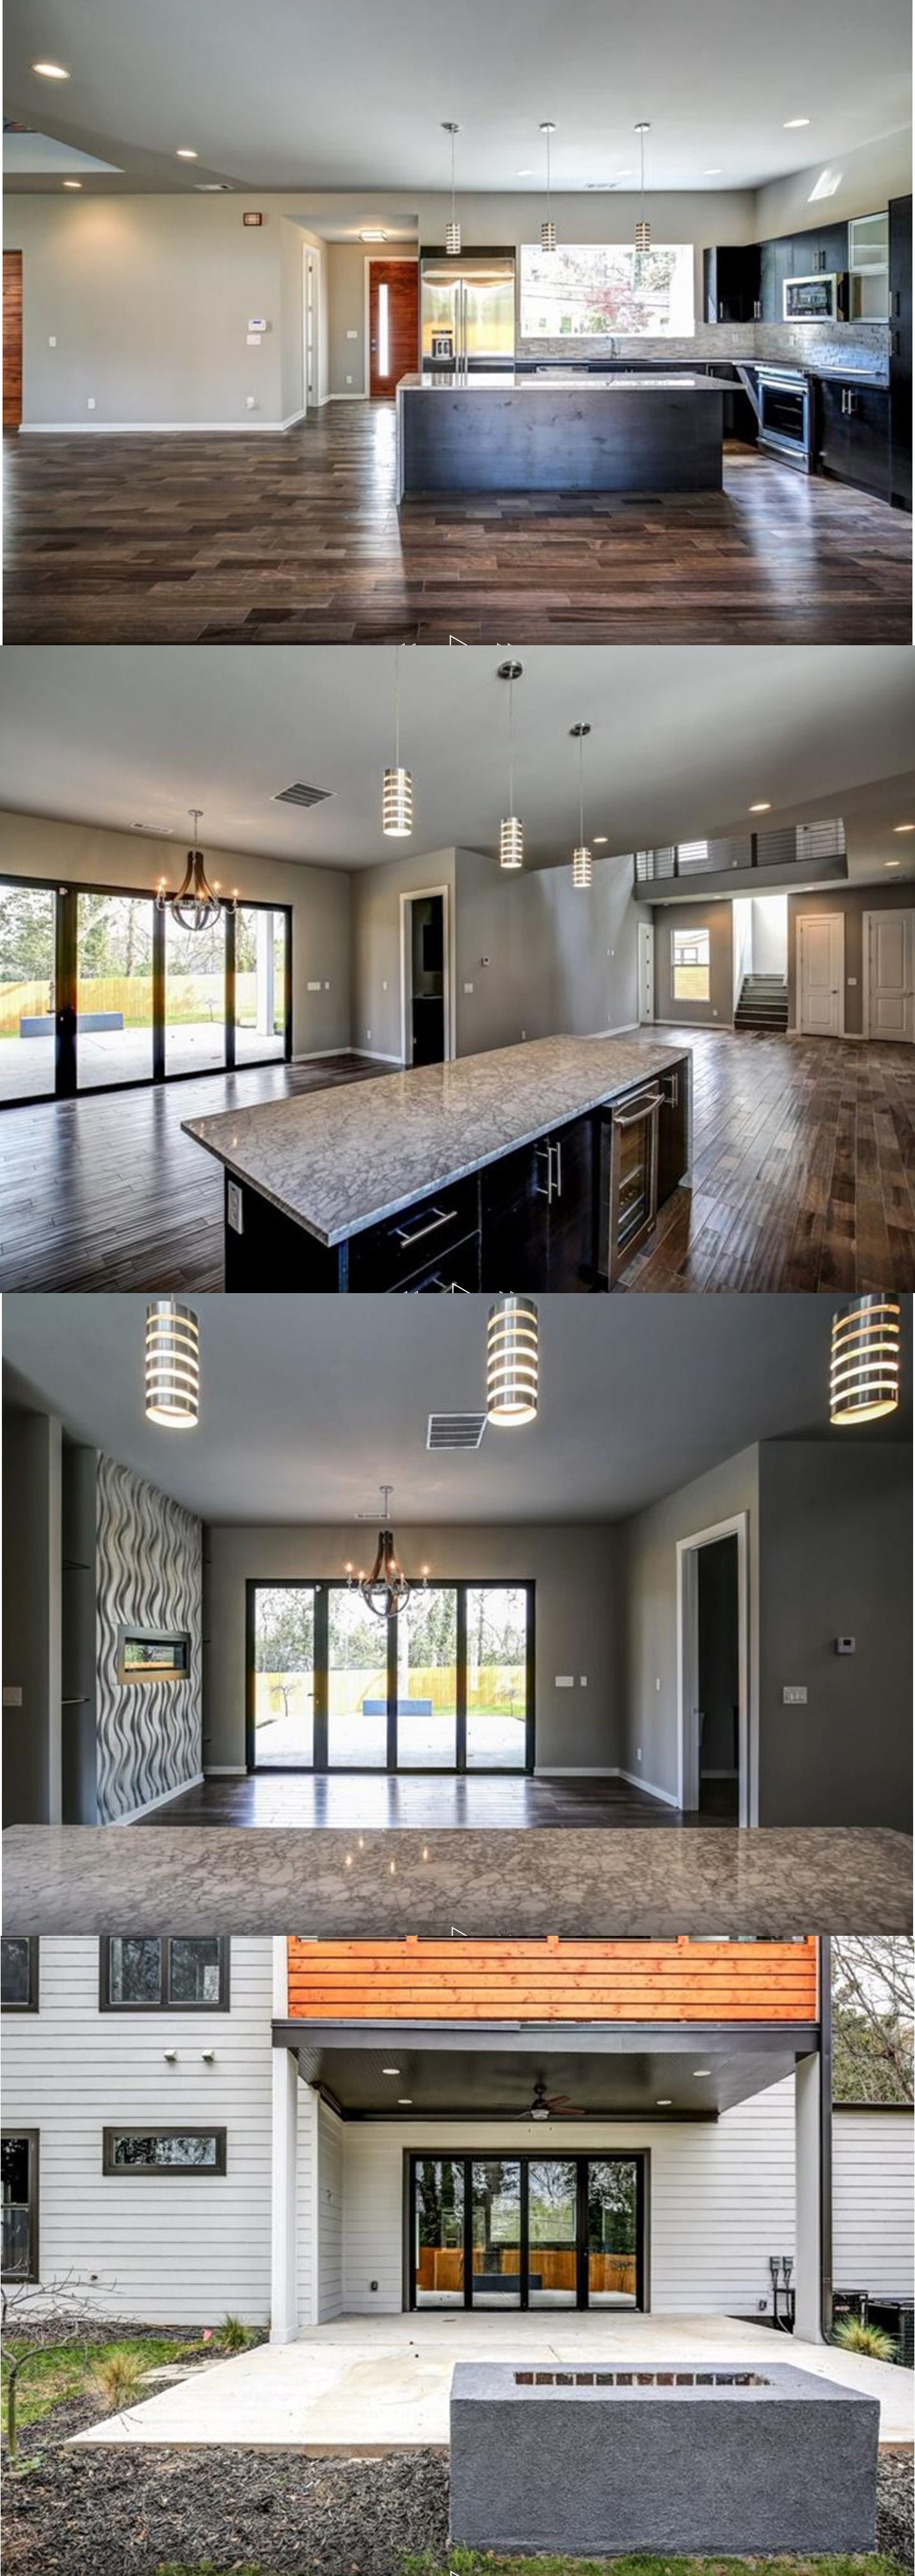 Dream Kitchen Kitchen > Dining > Patio With Firepit, All